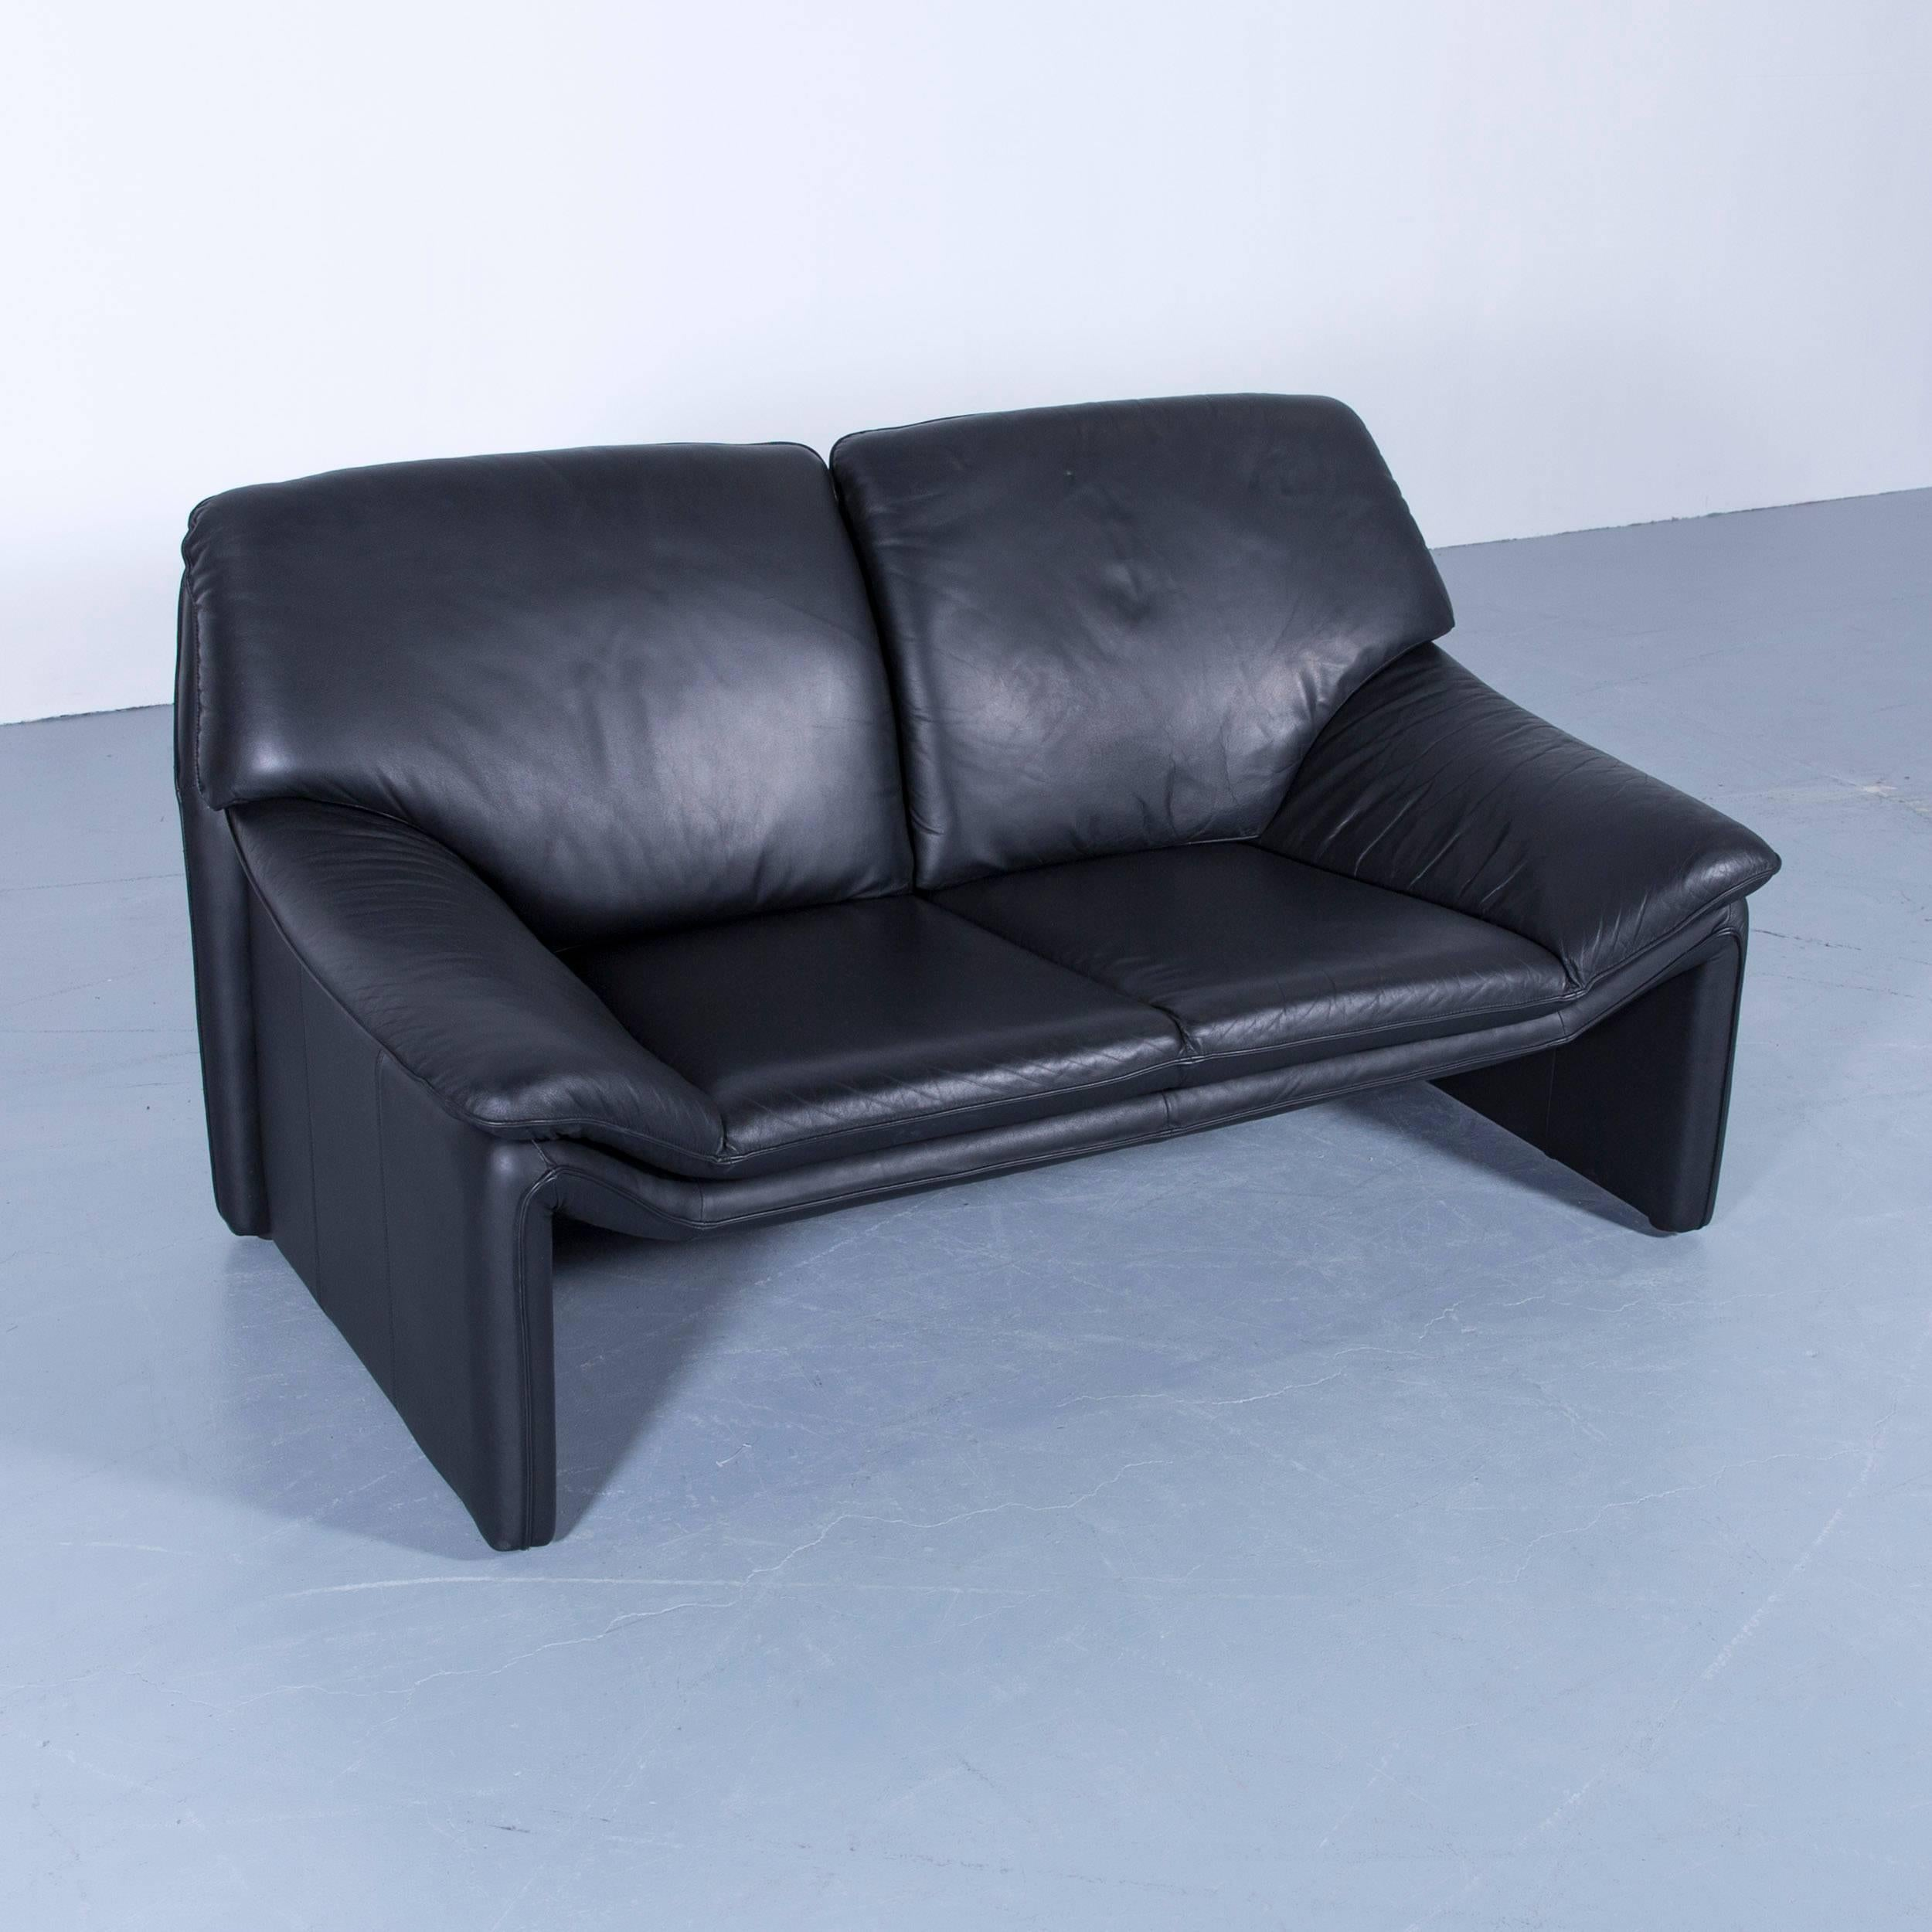 Designer Couch Schwarz Sofa Schwarz Interesting Couch Led All This Comes Encased